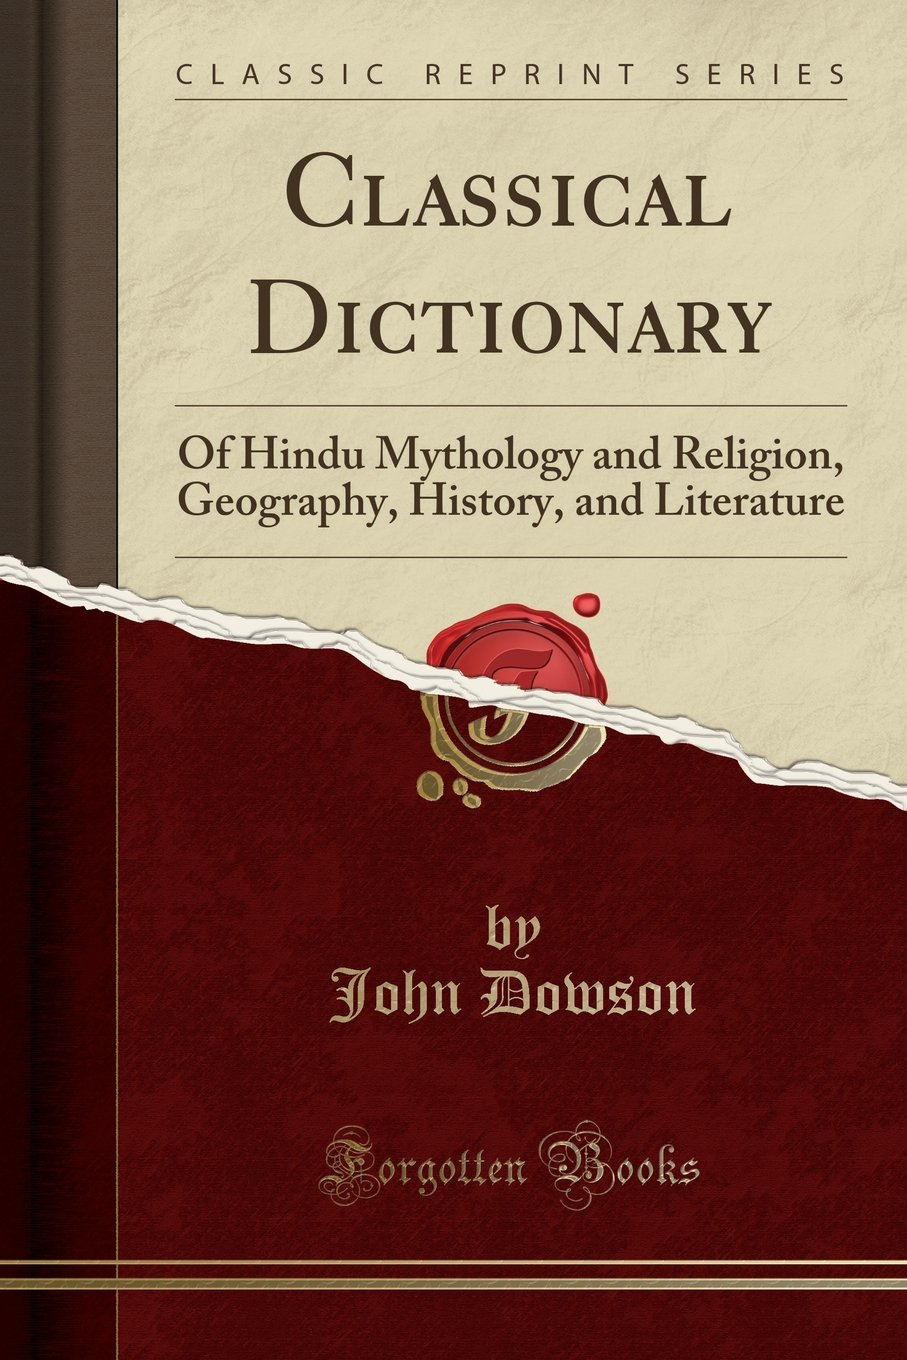 Classical Dictionary: Of Hindu Mythology and Religion, Geography, History, and Literature (Classic Reprint)